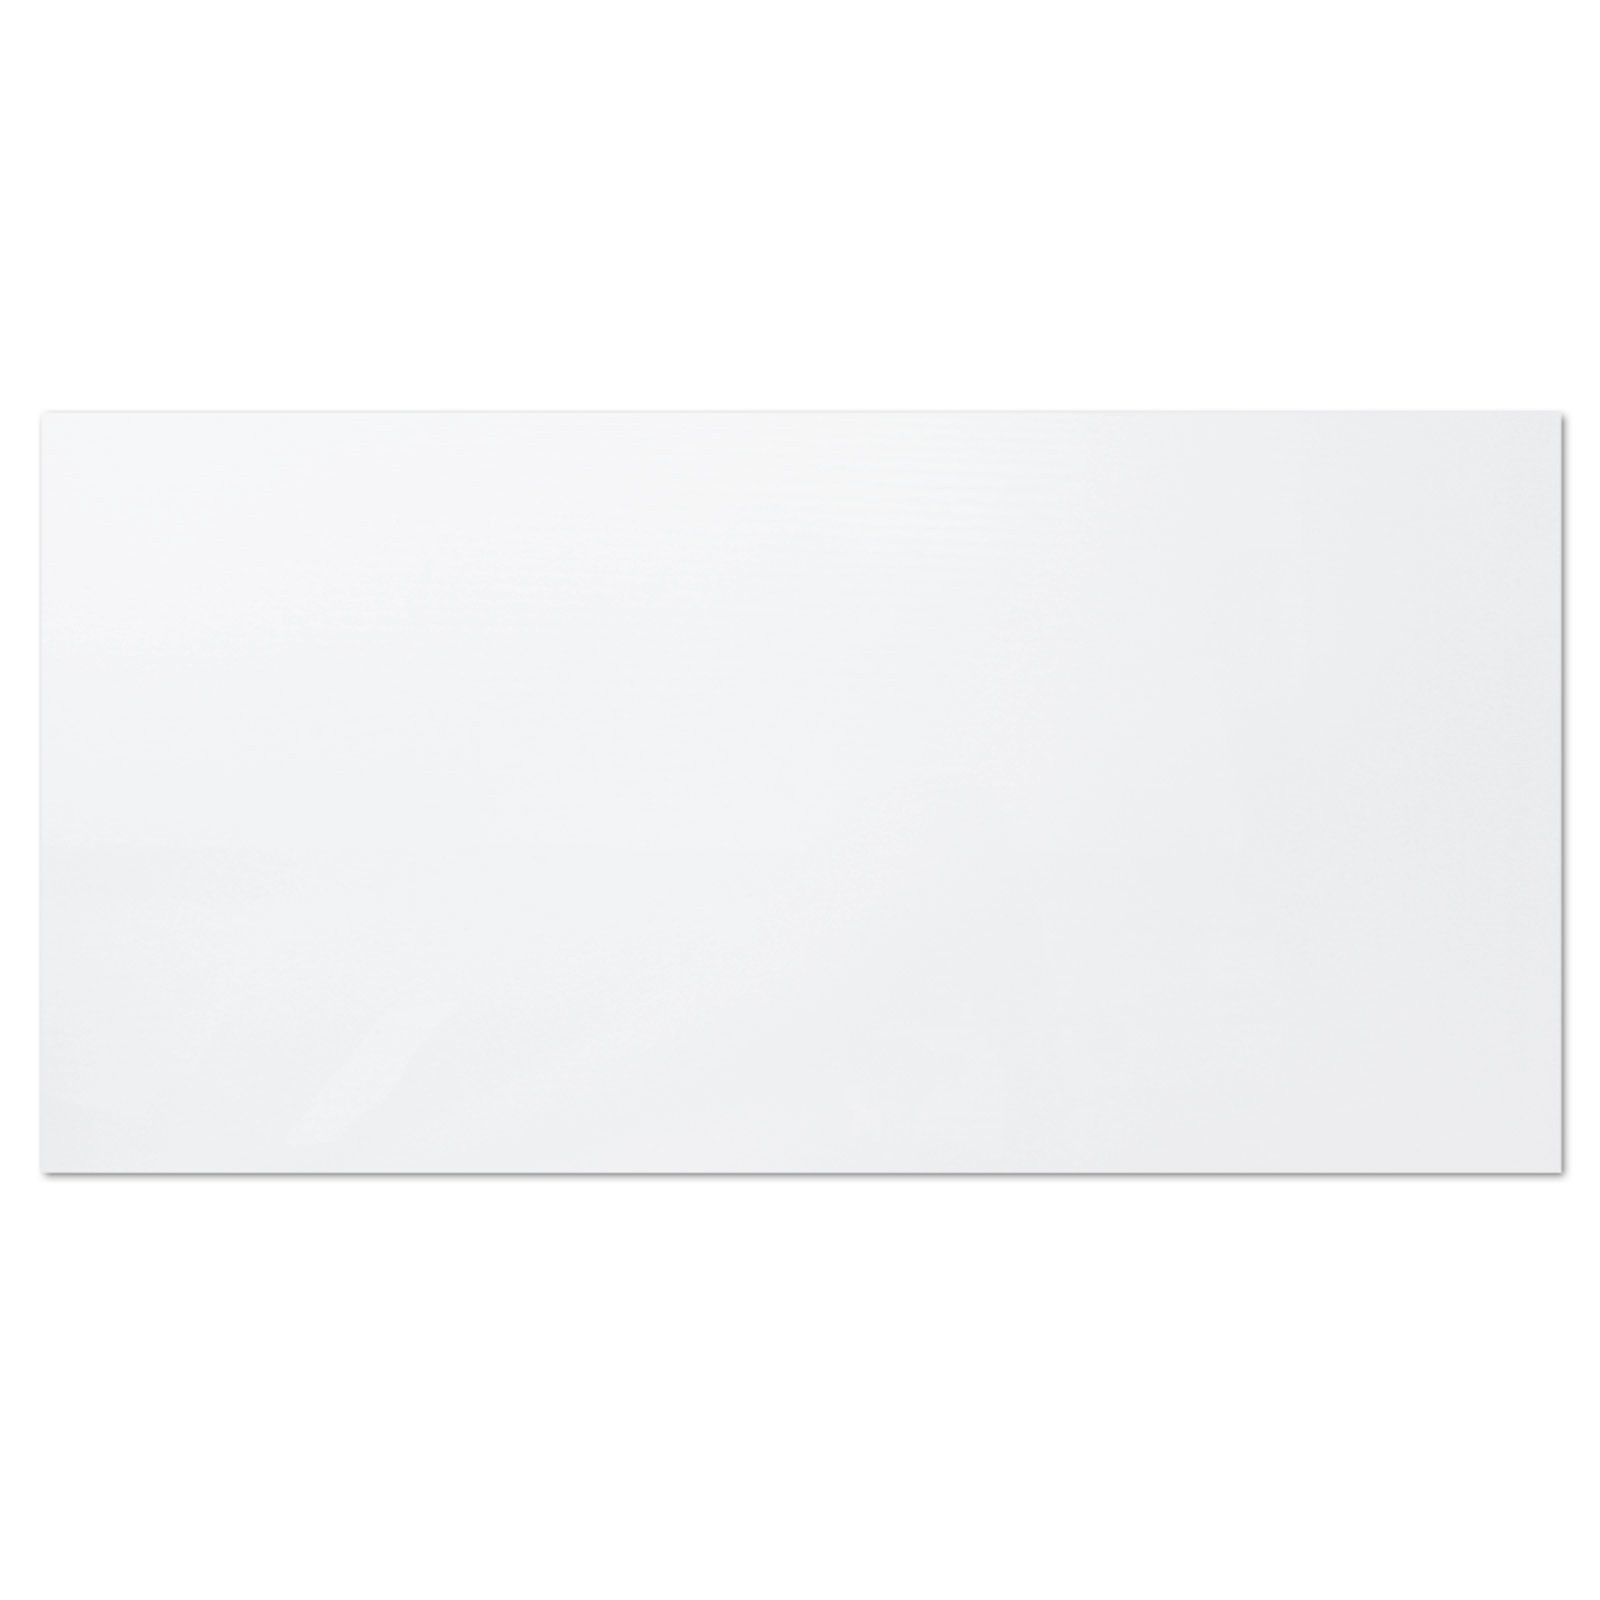 White Gloss Bathroom Fitted Furniture 1500mm: Tuscany White Gloss Rectified Wall Tile